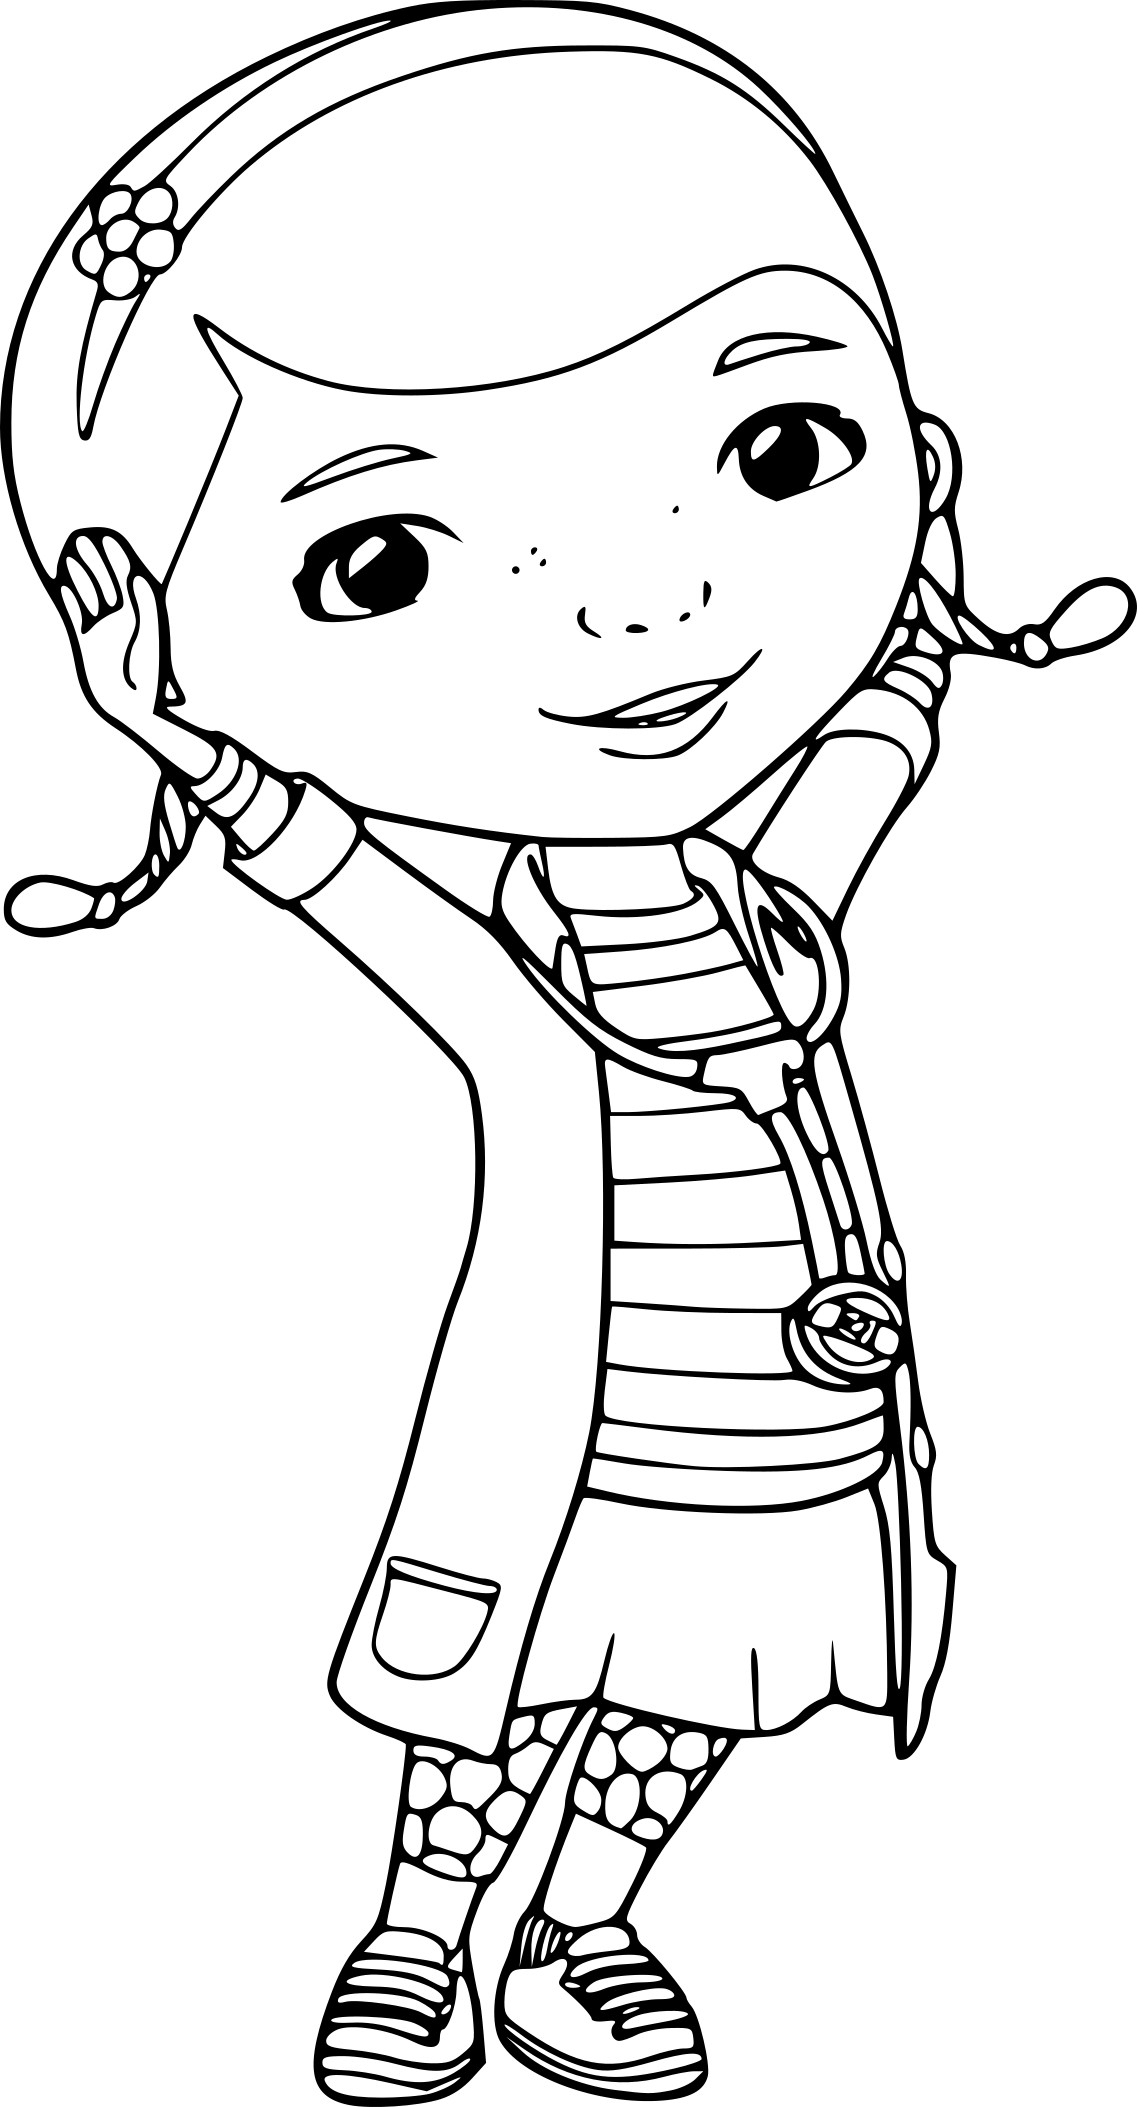 pocoyo coloring pages online - 27 pocoyo coloring pages printable free coloring pages